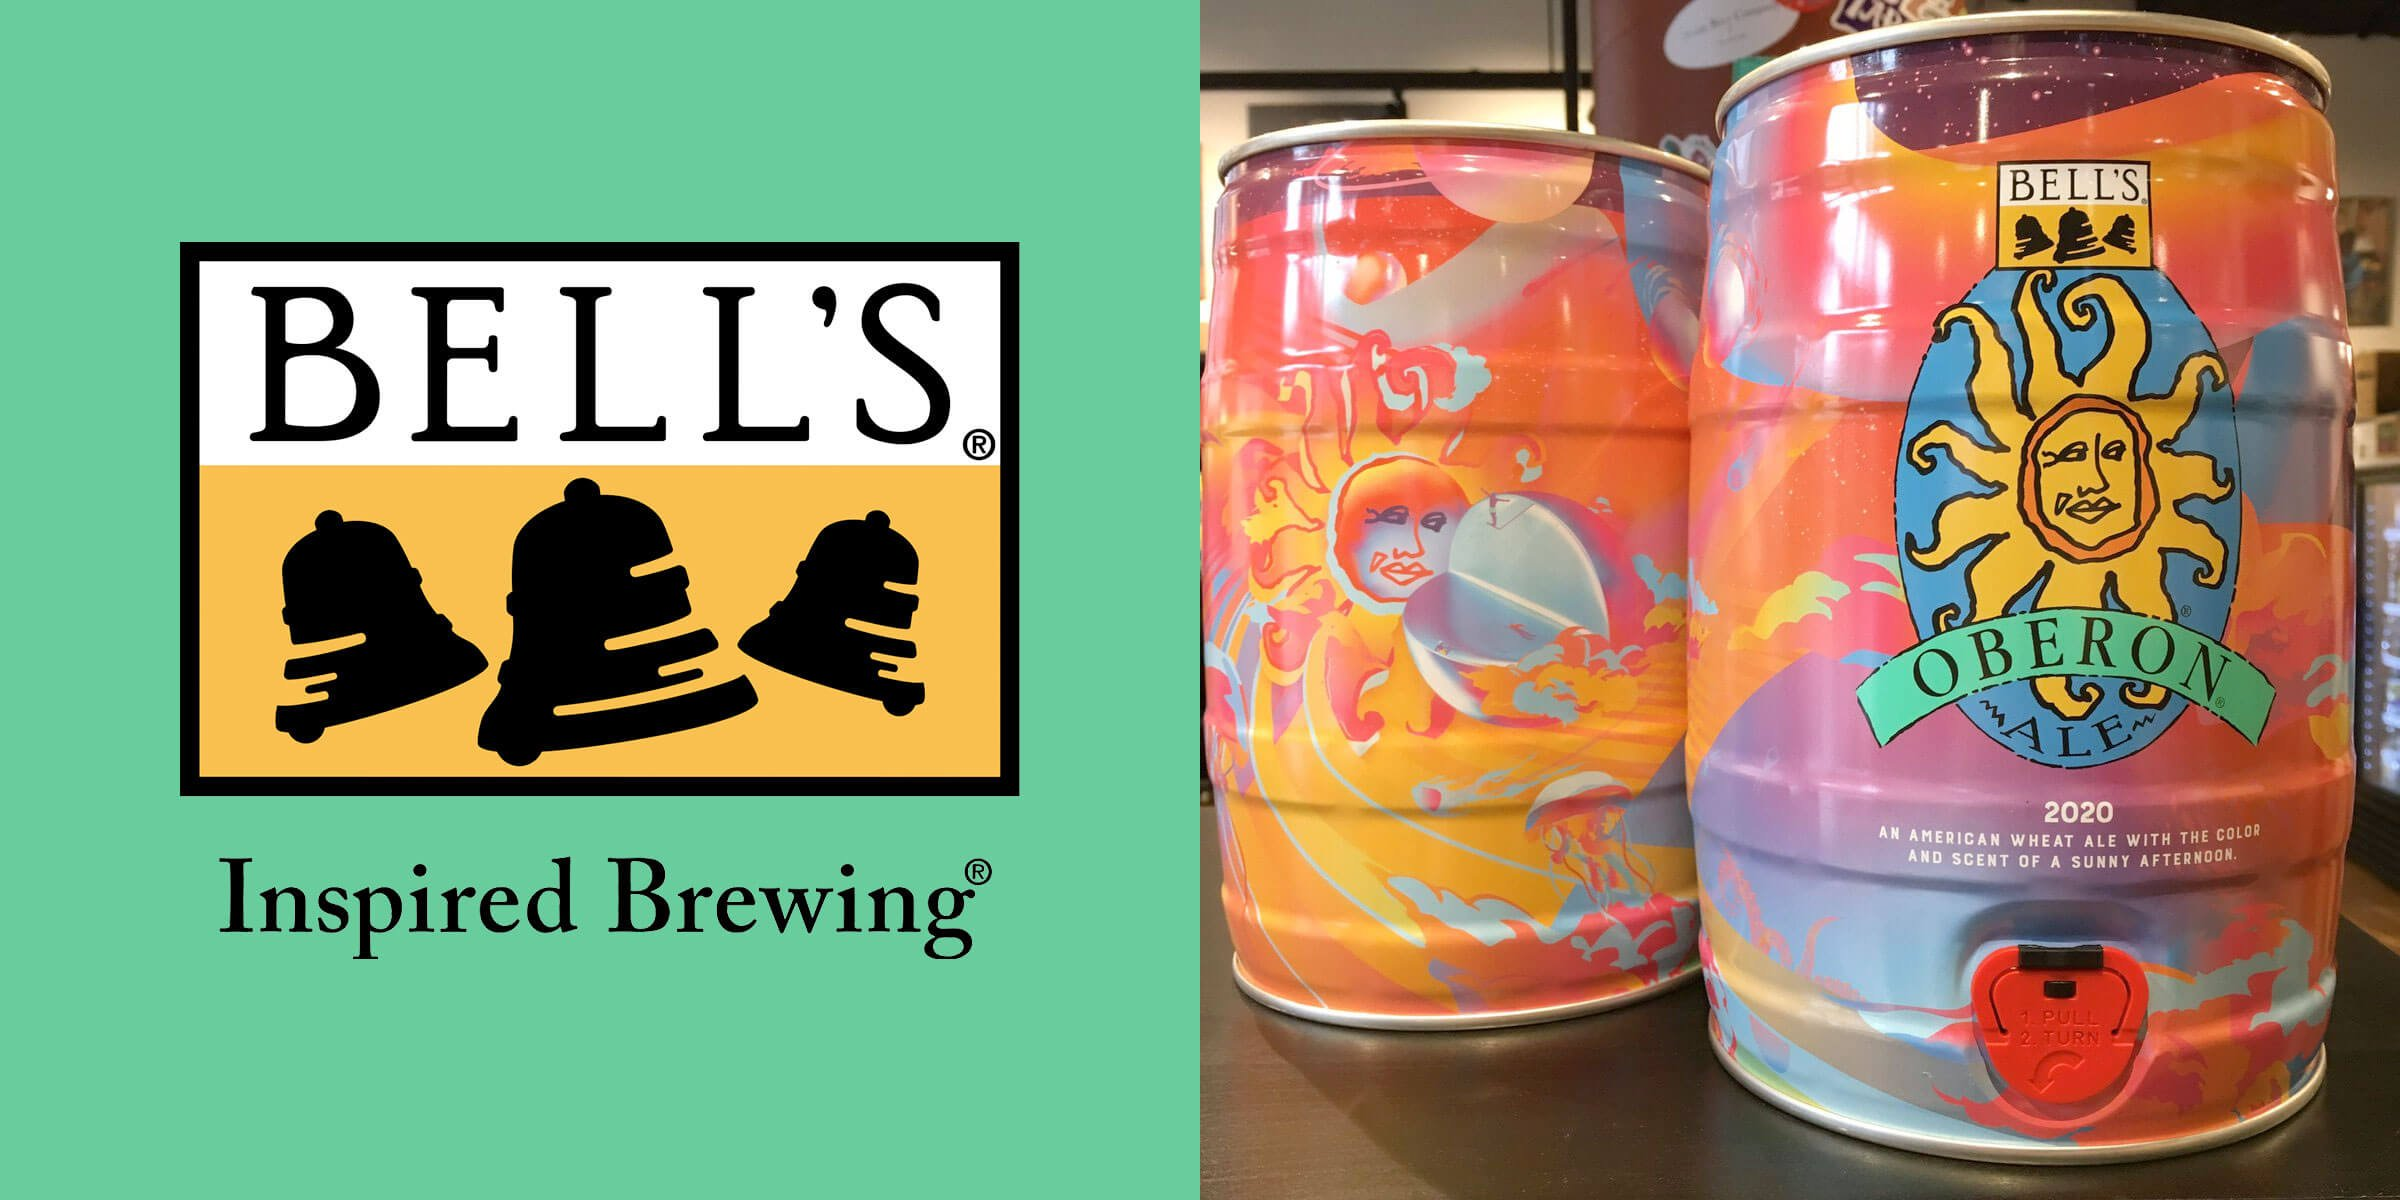 Bell's Brewery, Inc. has begun offering additional packaging options for the Two Hearted Ale, Light Hearted Ale, and their summer seasonal, Oberon Ale.